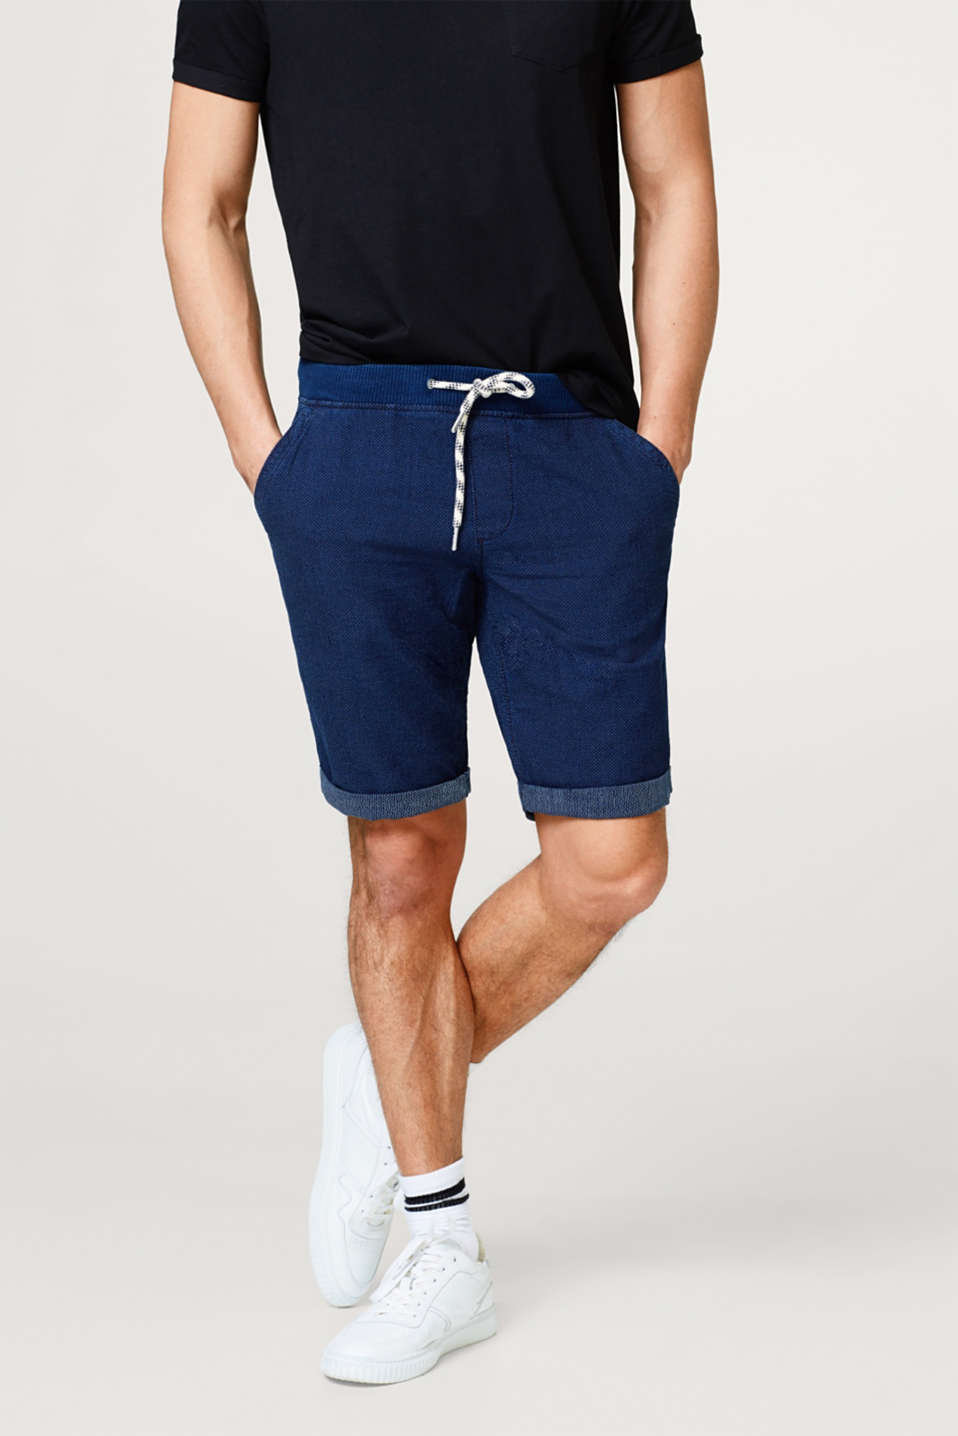 edc - Jogging shorts with a fine woven structure, made of cotton